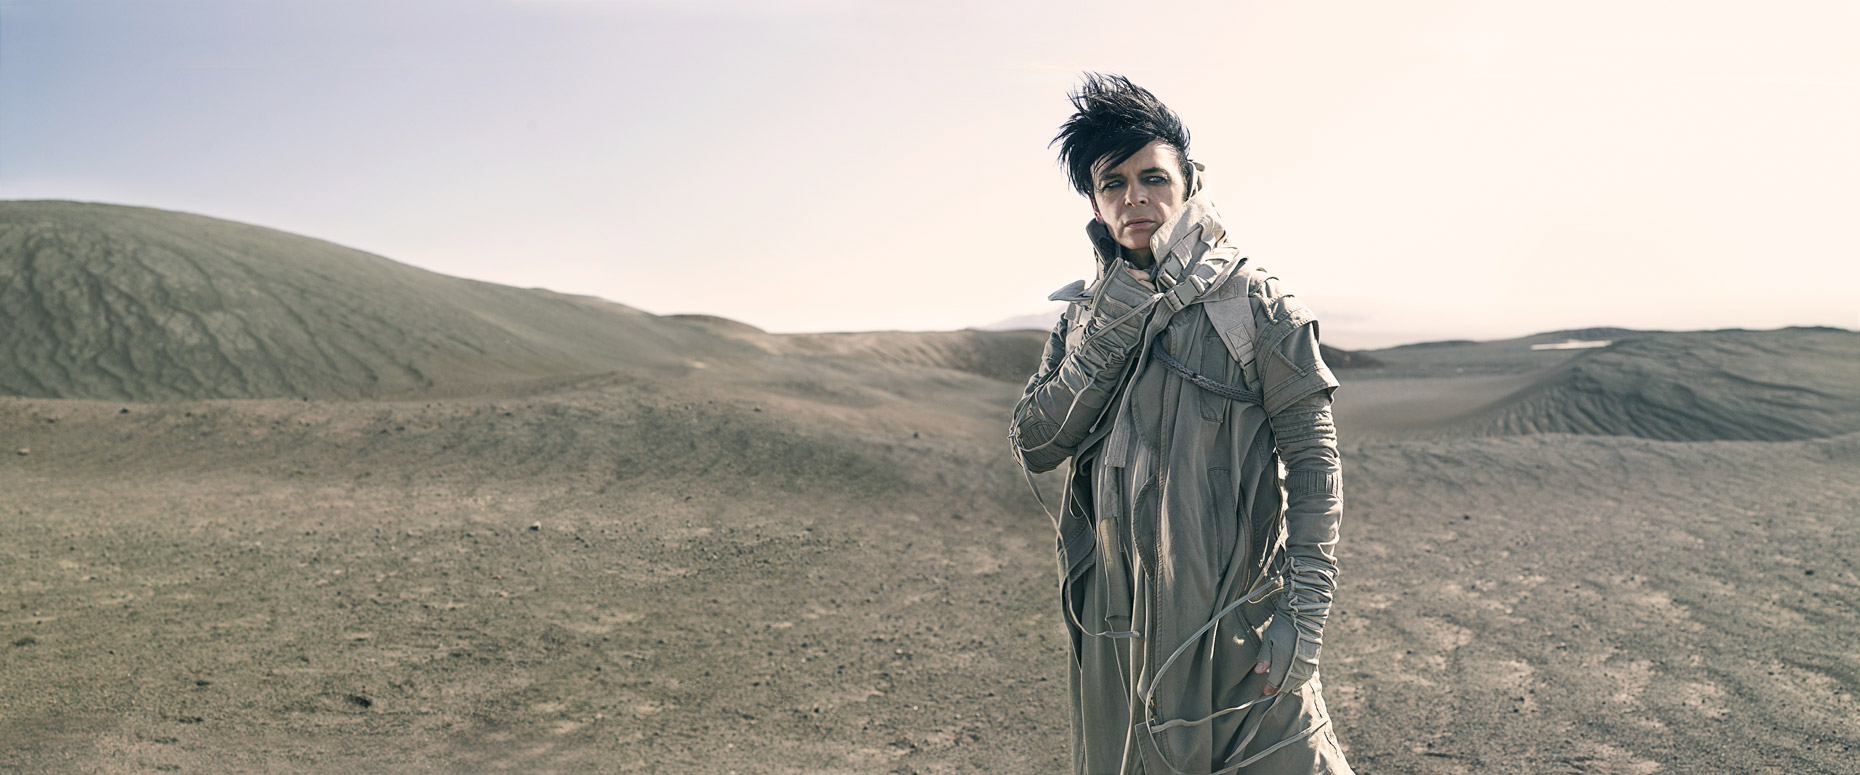 04-GARYNUMAN-Location119652-V2-FINAL-light